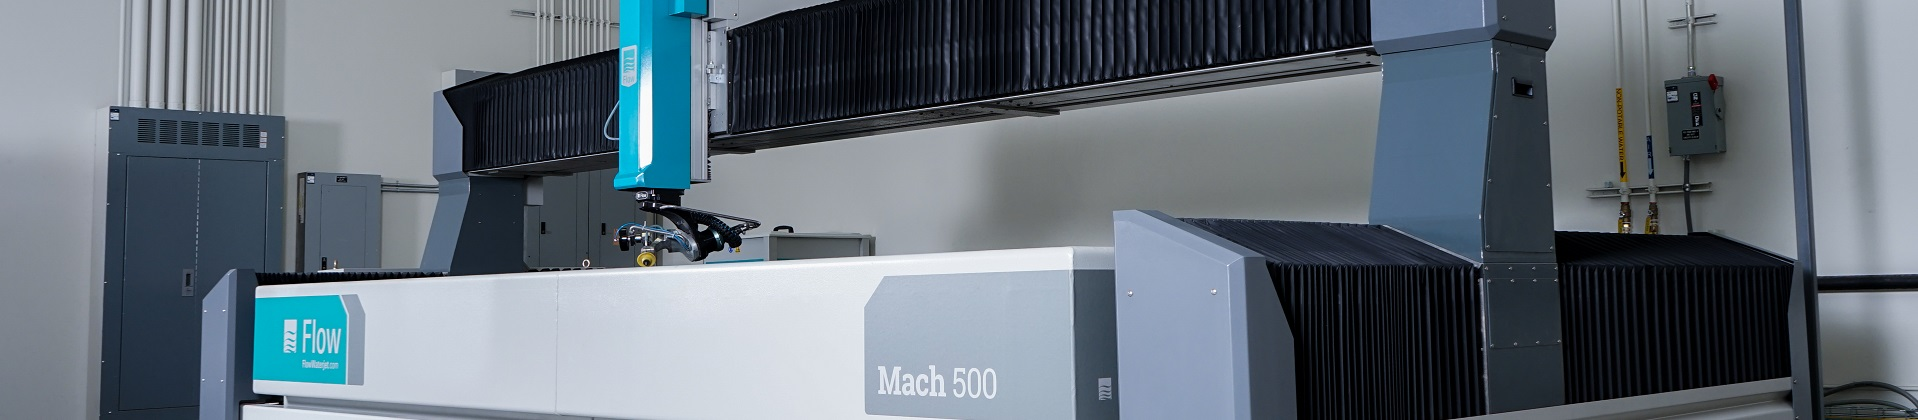 Preparing for your Waterjet. Flow's Mach series waterjets.